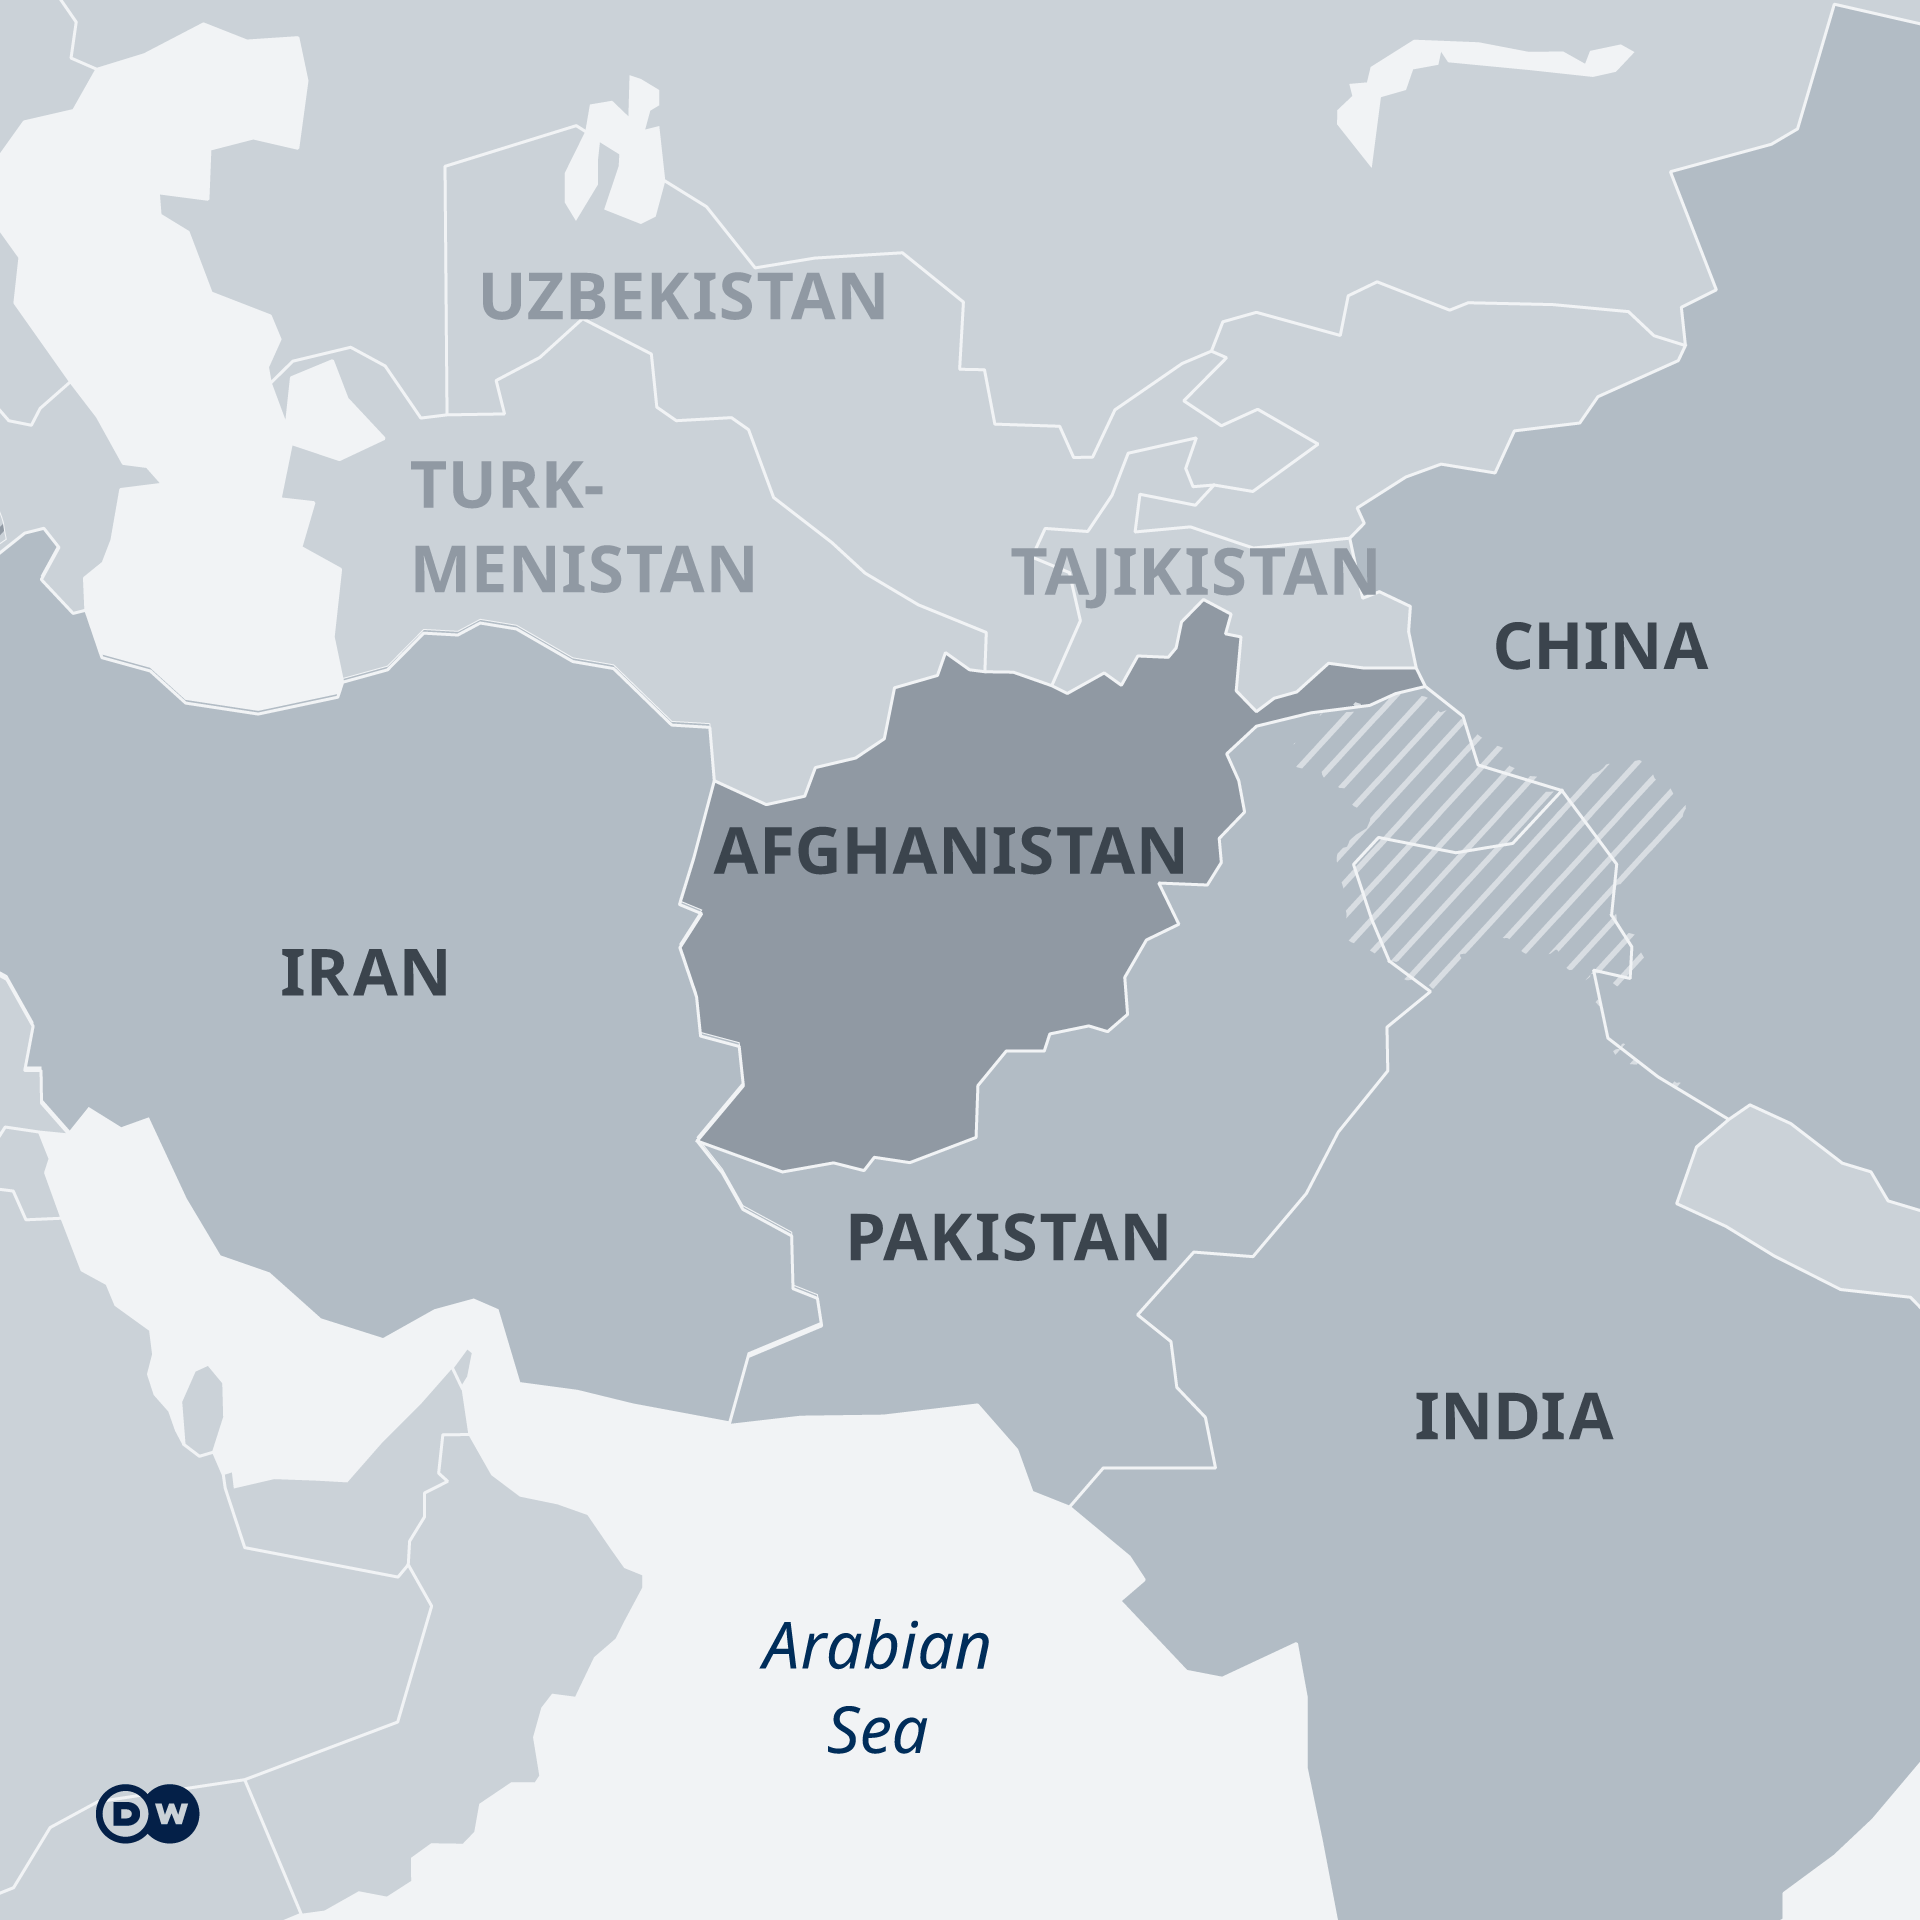 A map indicating the location of Afghanistan